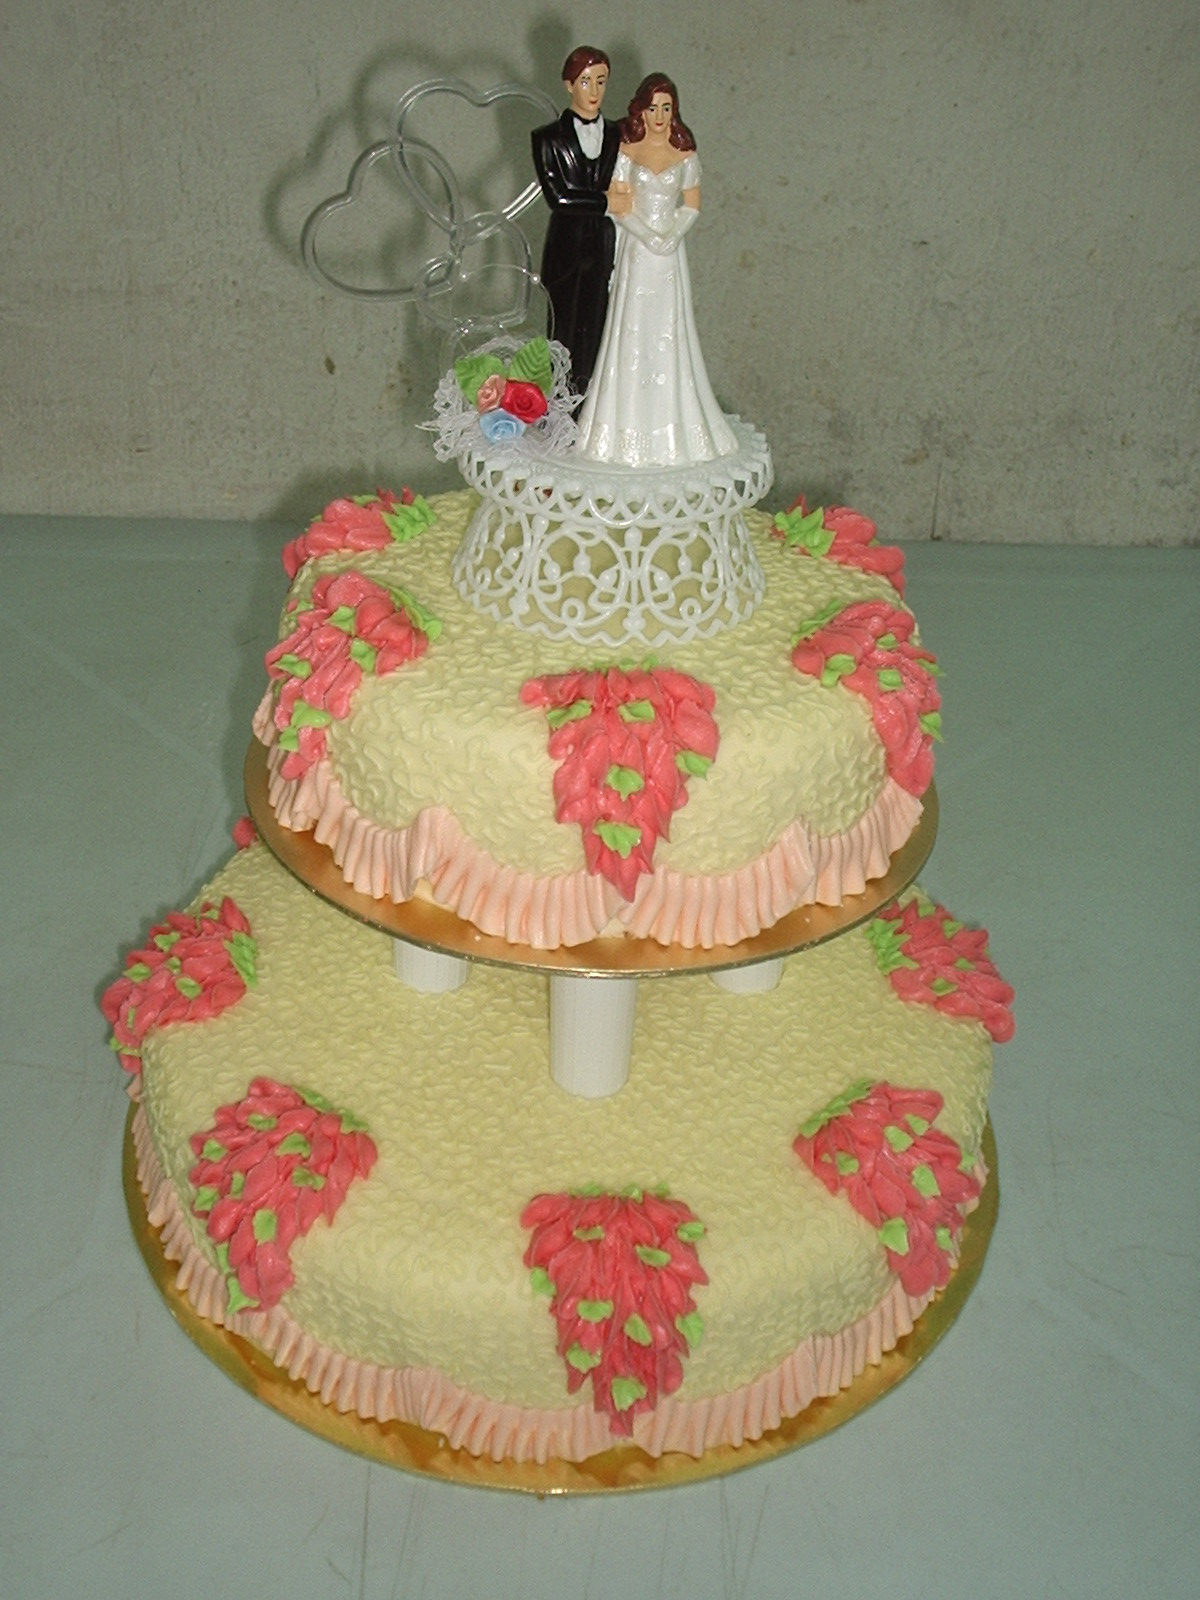 vasanthi baking and culinary wedding cake course. Black Bedroom Furniture Sets. Home Design Ideas